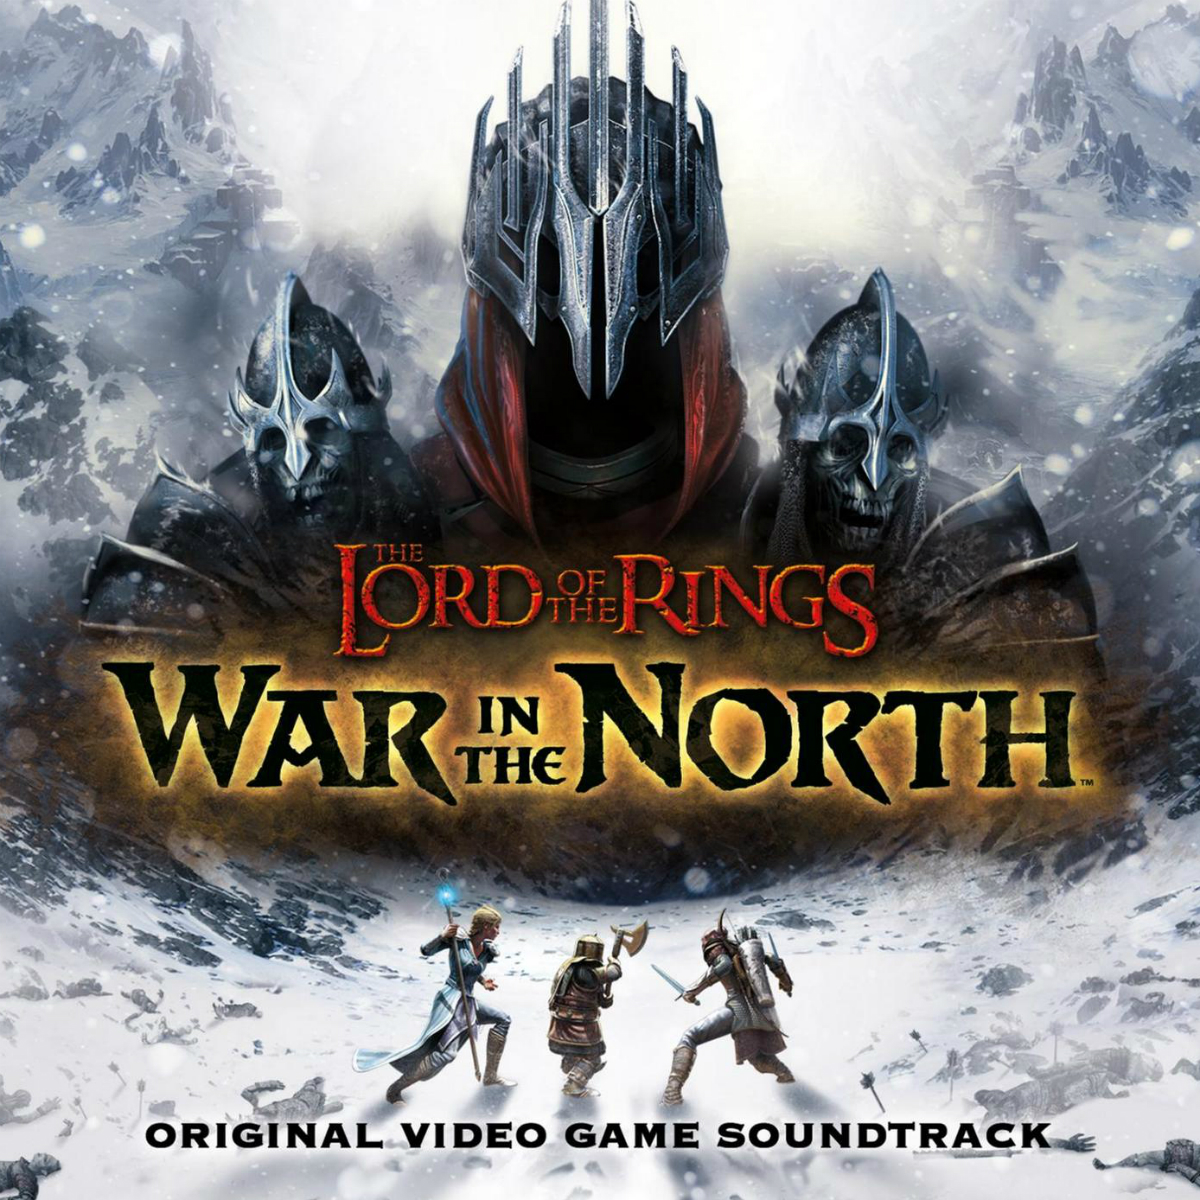 The_Lord_of_the_Rings__War_in_the_North_Original_Video_Game_Soundtrack__cover1200x1200.jpg